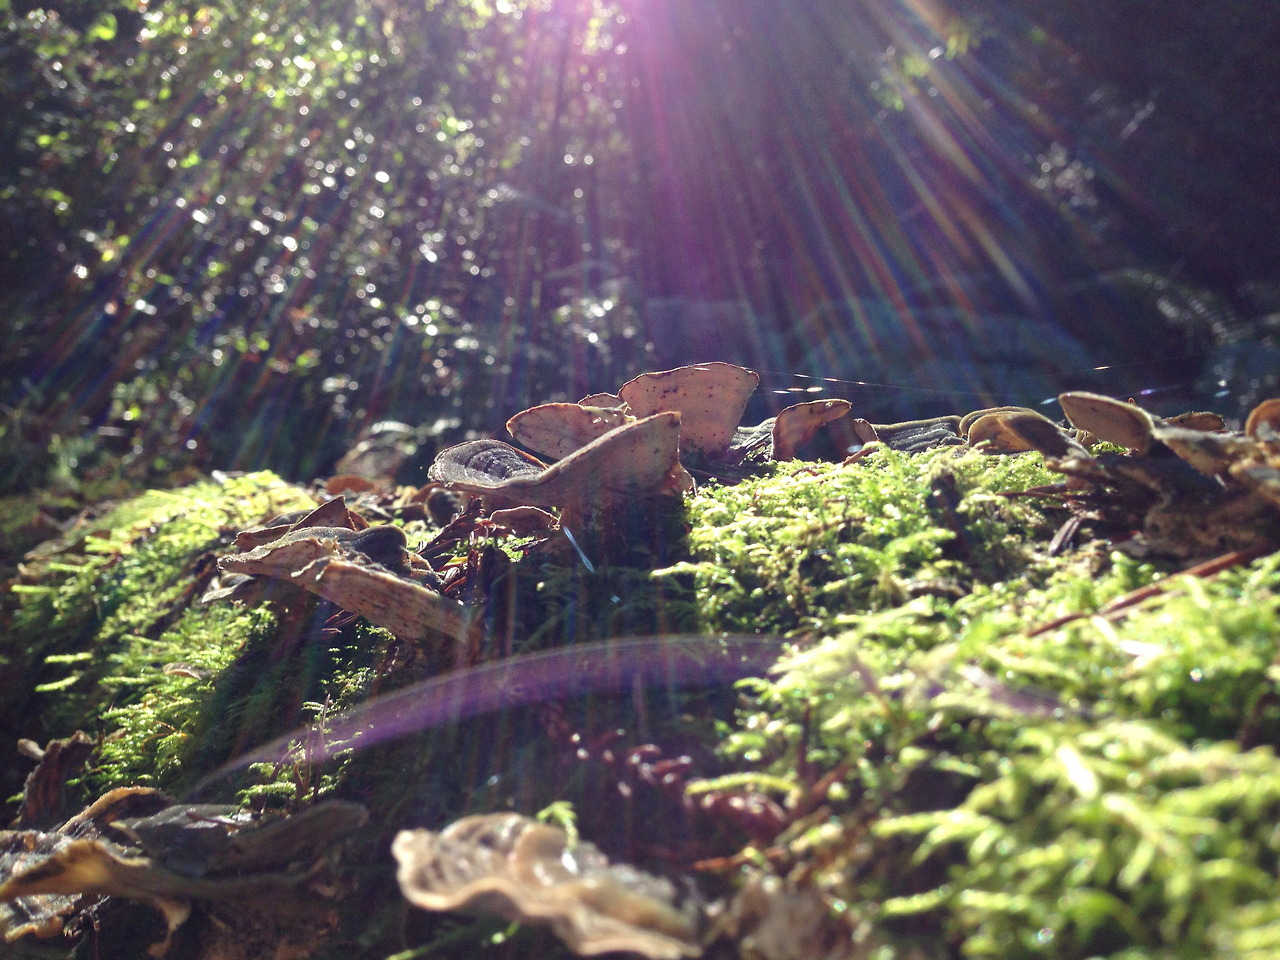 I found some mushrooms in Heritage Grove, La Honda, California.